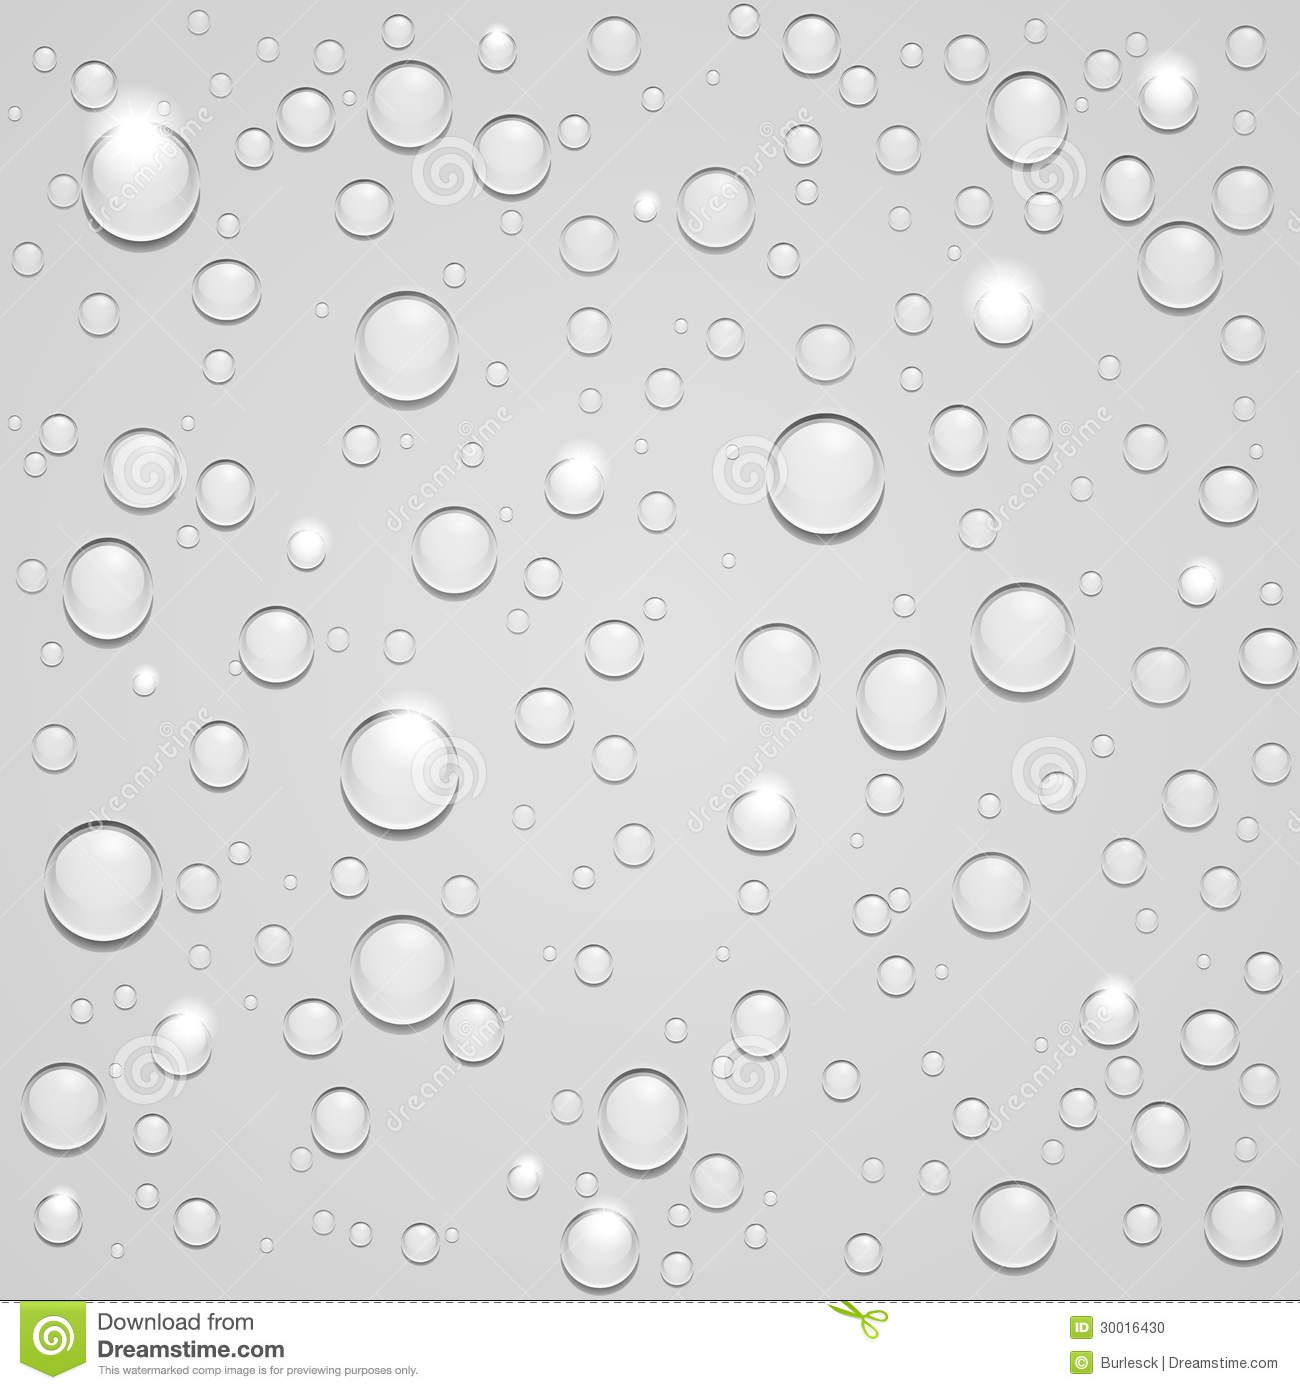 Water Drops On White Background Stock Photo - Image: 30016430